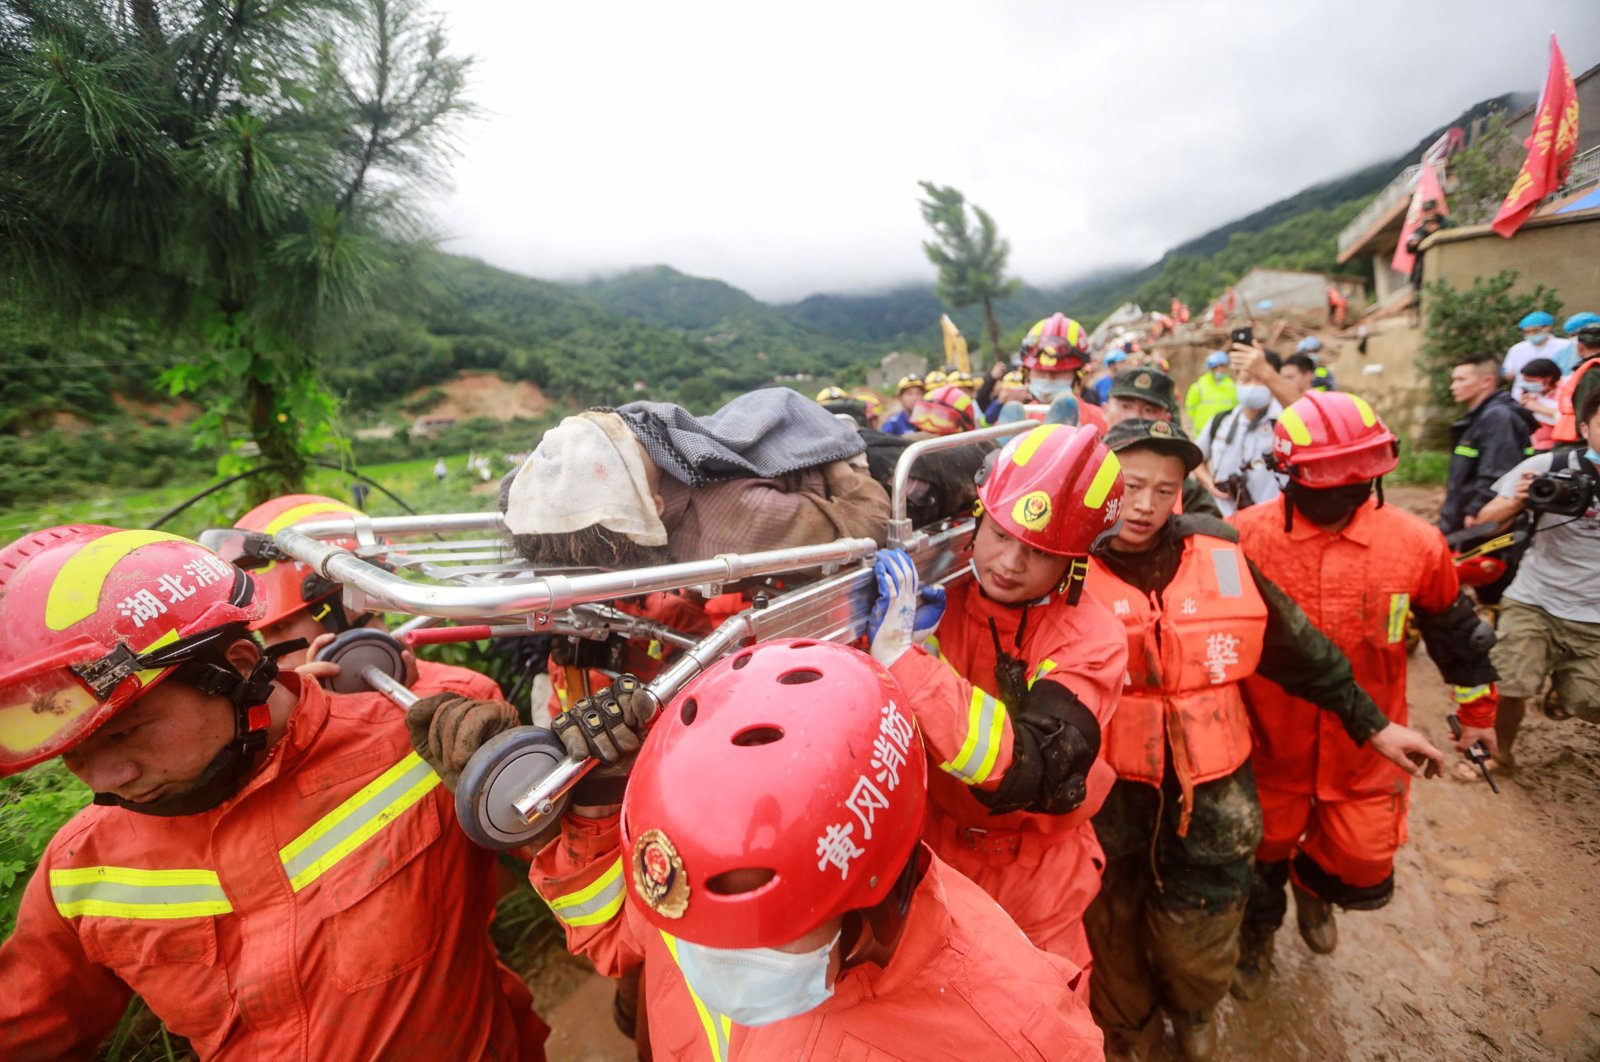 Rescuers carry an injured person at the scene of a landslide in Huangmei county, Huanggang city, in China's central Hubei province, July 8, 2020. (AFP Photo)